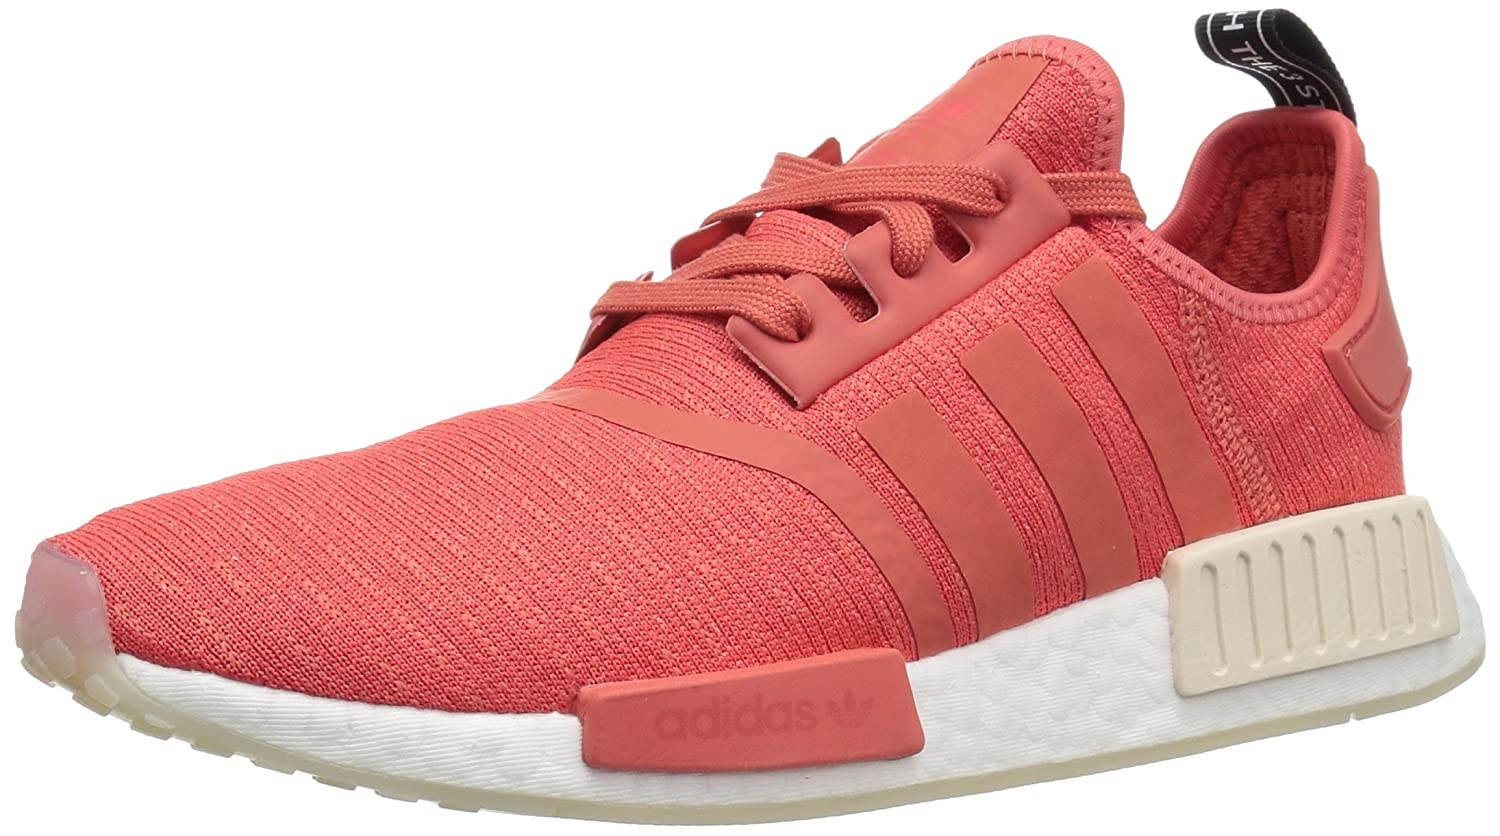 adidas Originals Women's NMD_r1 B07BHKYBKP 10 B(M) US|Trace Scarlet/Trace Scarlet/White